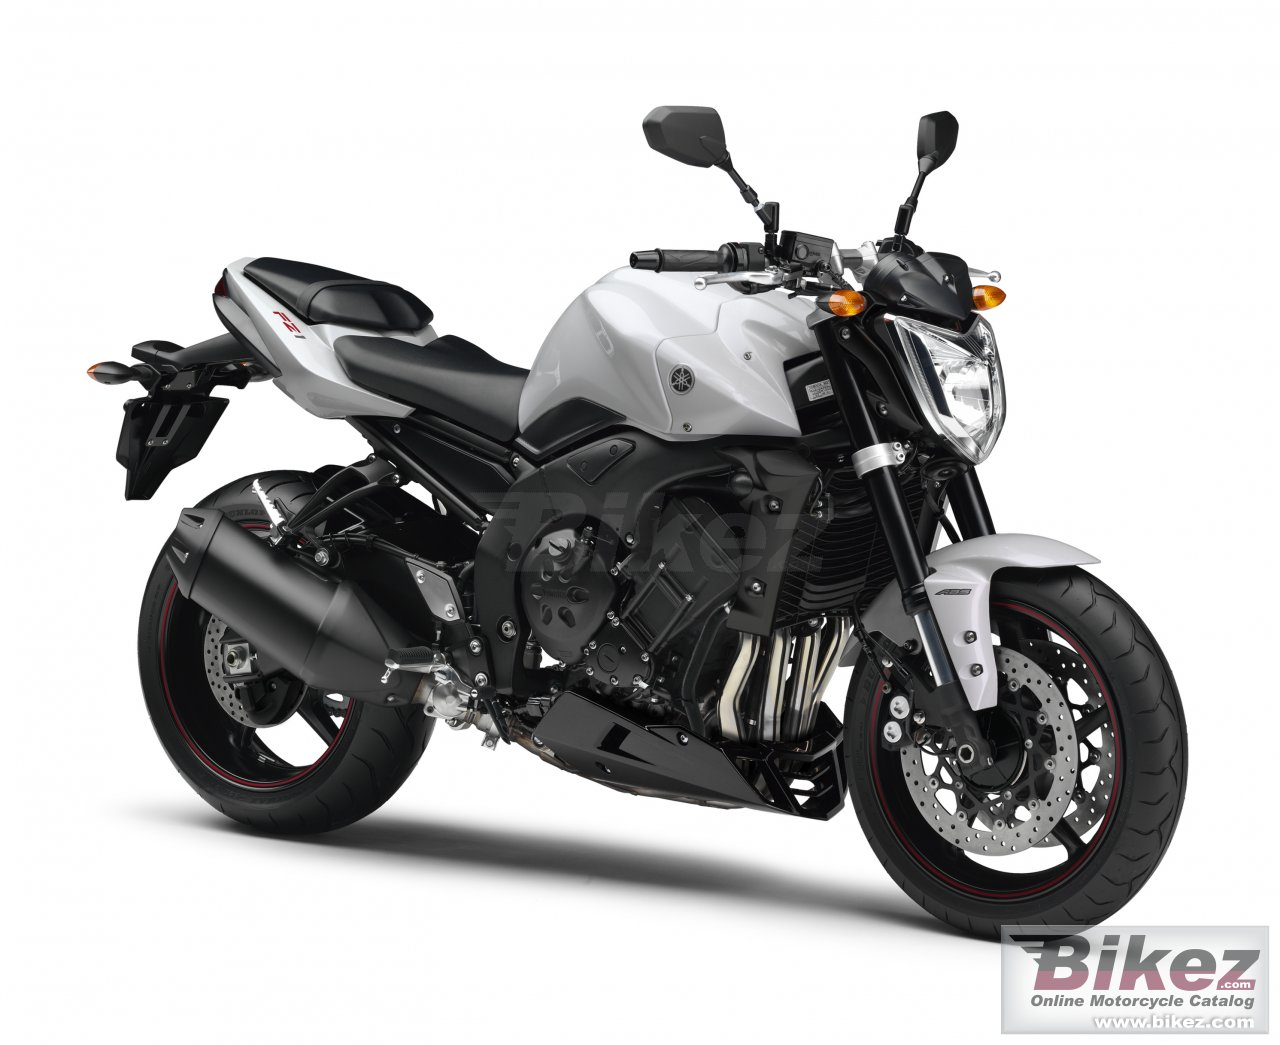 Big Yamaha fz1 picture and wallpaper from Bikez.com